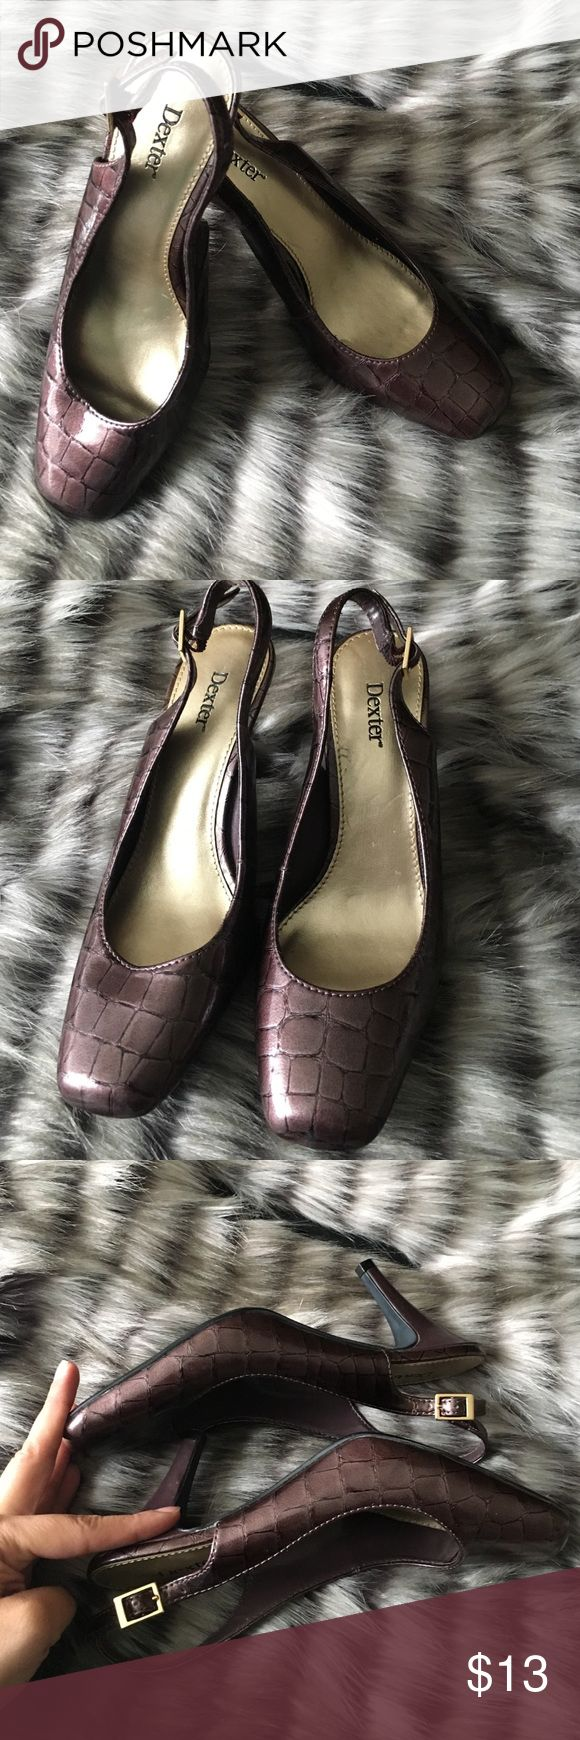 Dexter Brown Women's Slingback Size 6.5 This listing is for a pair of gently used Dexter Brown Slingbacks with gold hardware has small heel. No scuffs just a what's shown in pic. These need a new loving home. No box included. dexter Shoes Heels